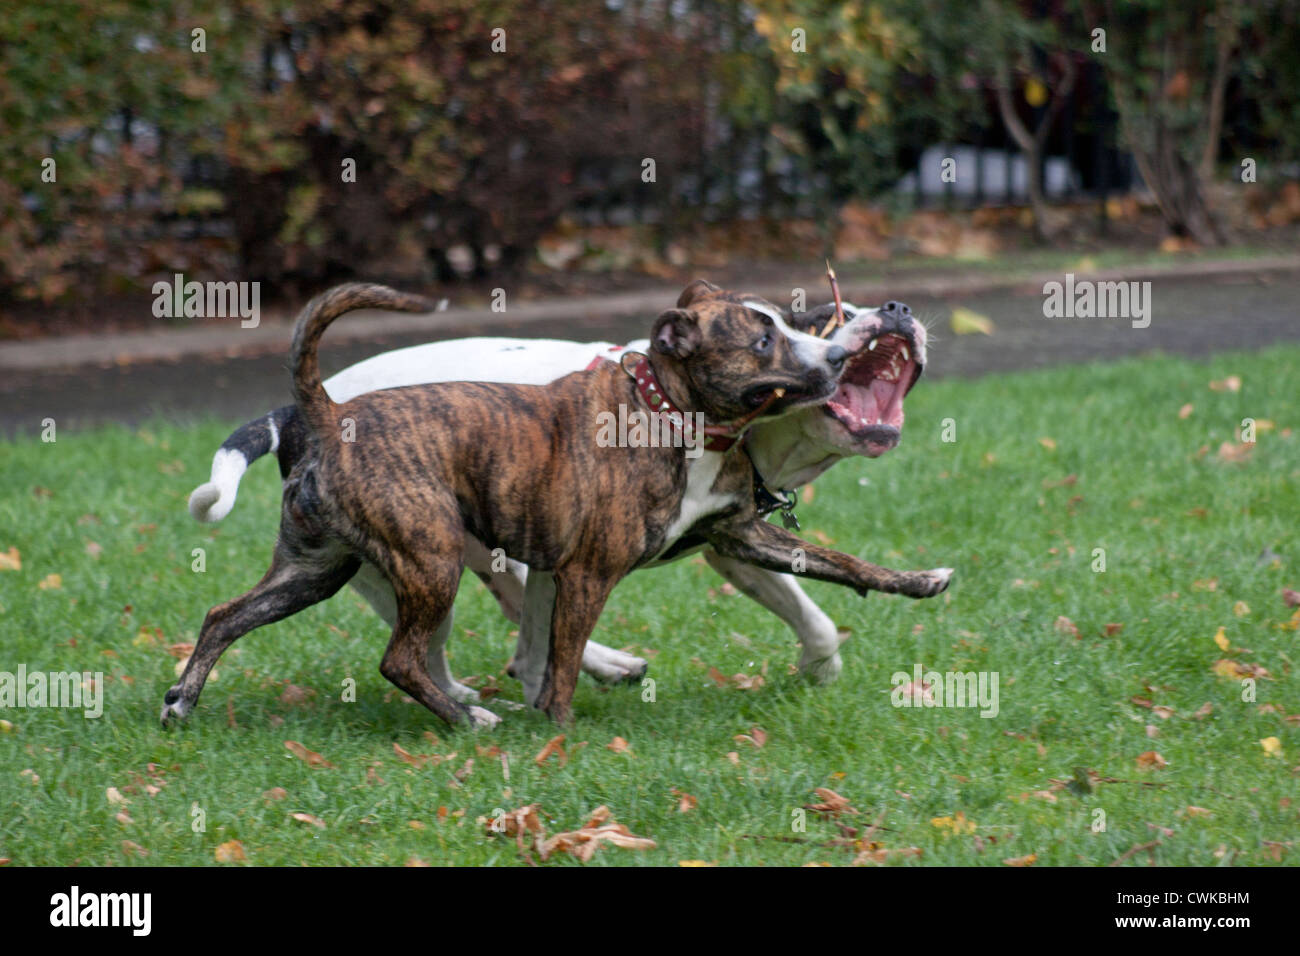 two dogs socialising in park - Stock Image